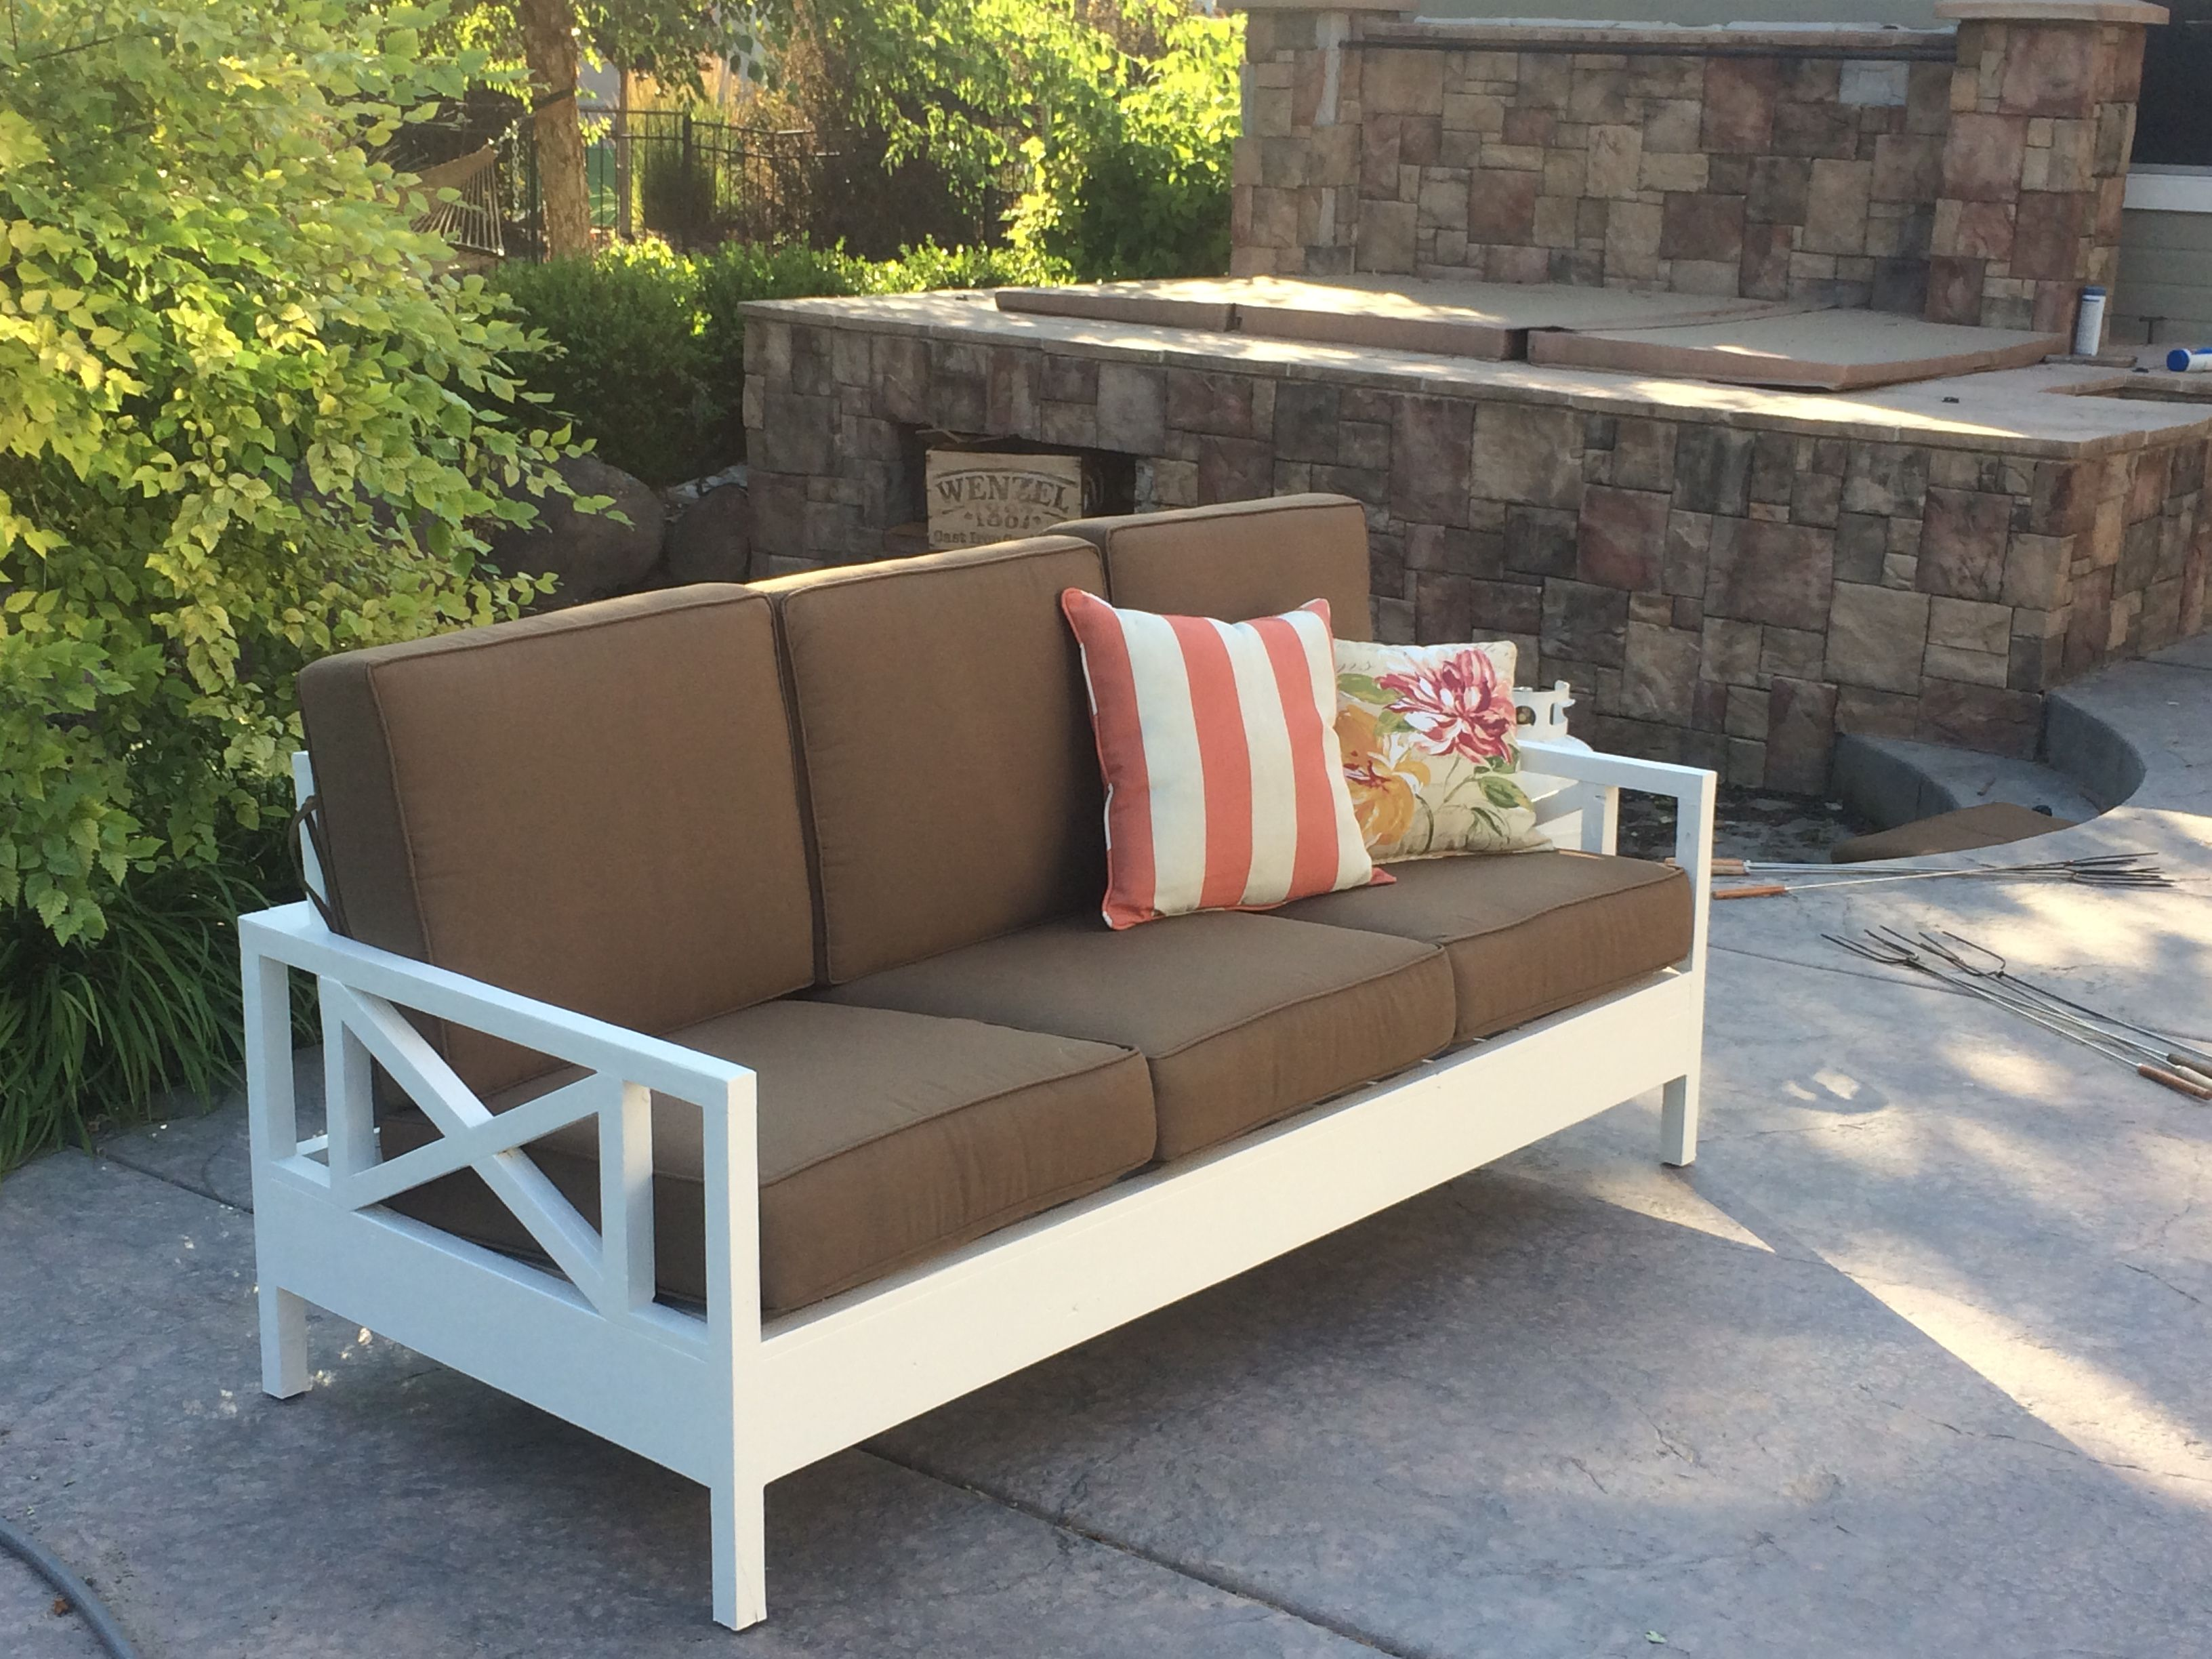 outdoor sofa mash up do it yourself home projects from ana white outdoor furniture tutorials. Black Bedroom Furniture Sets. Home Design Ideas